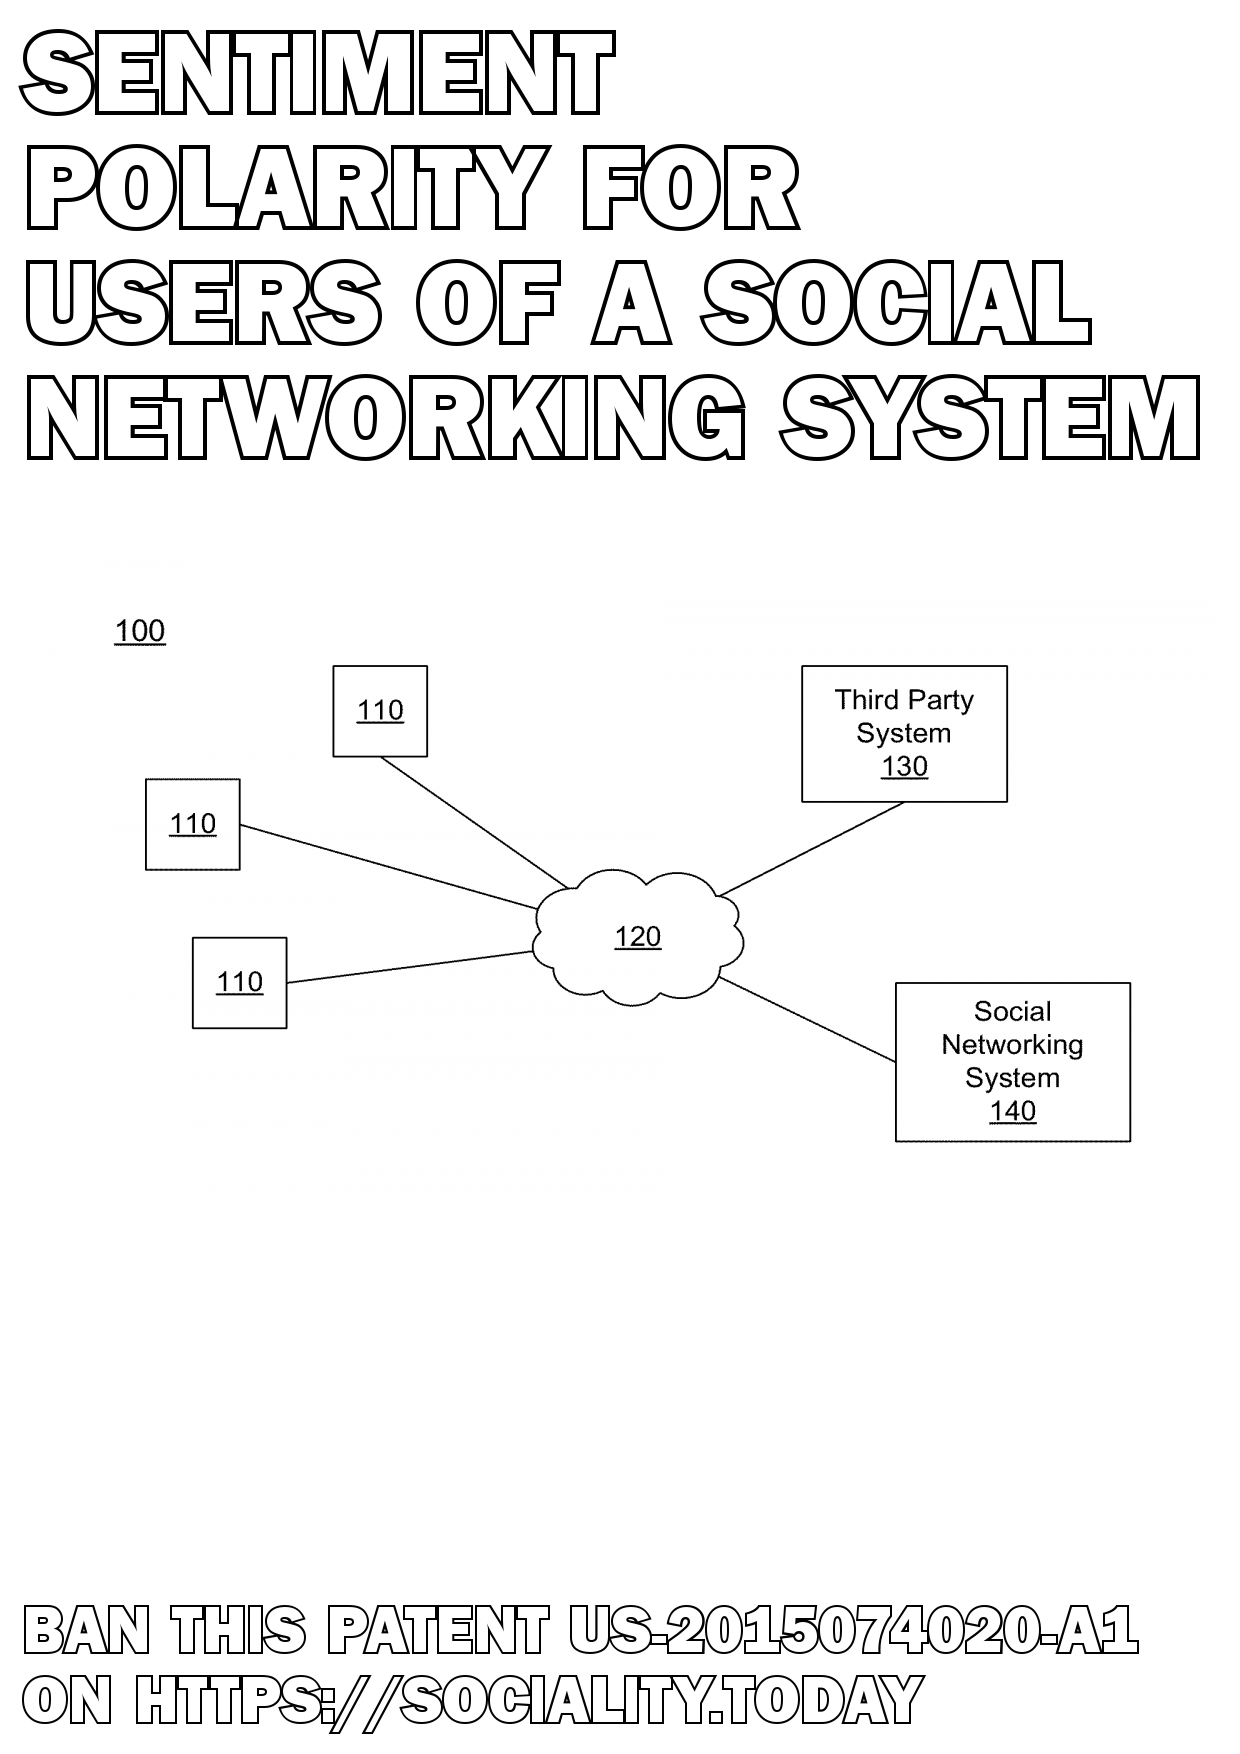 Sentiment polarity for users of a social networking system  - US-2015074020-A1